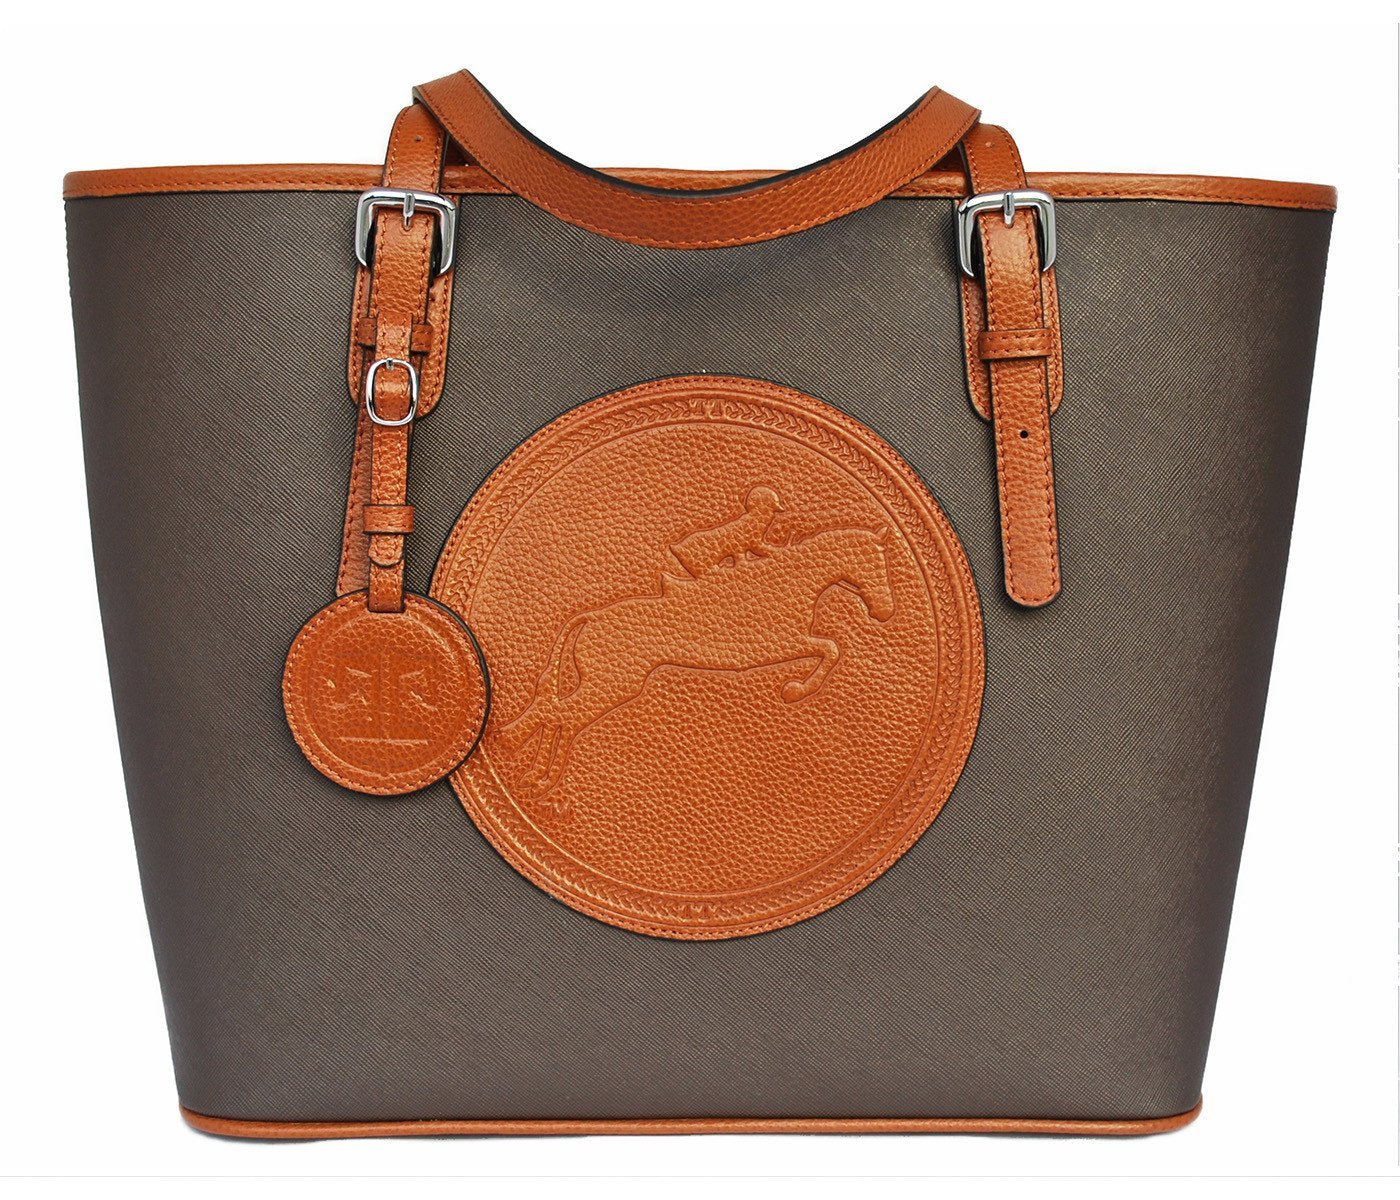 Tucker Tweed Leather Handbags Espresso/Chestnut The James River Carry All: Hunter/Jumper